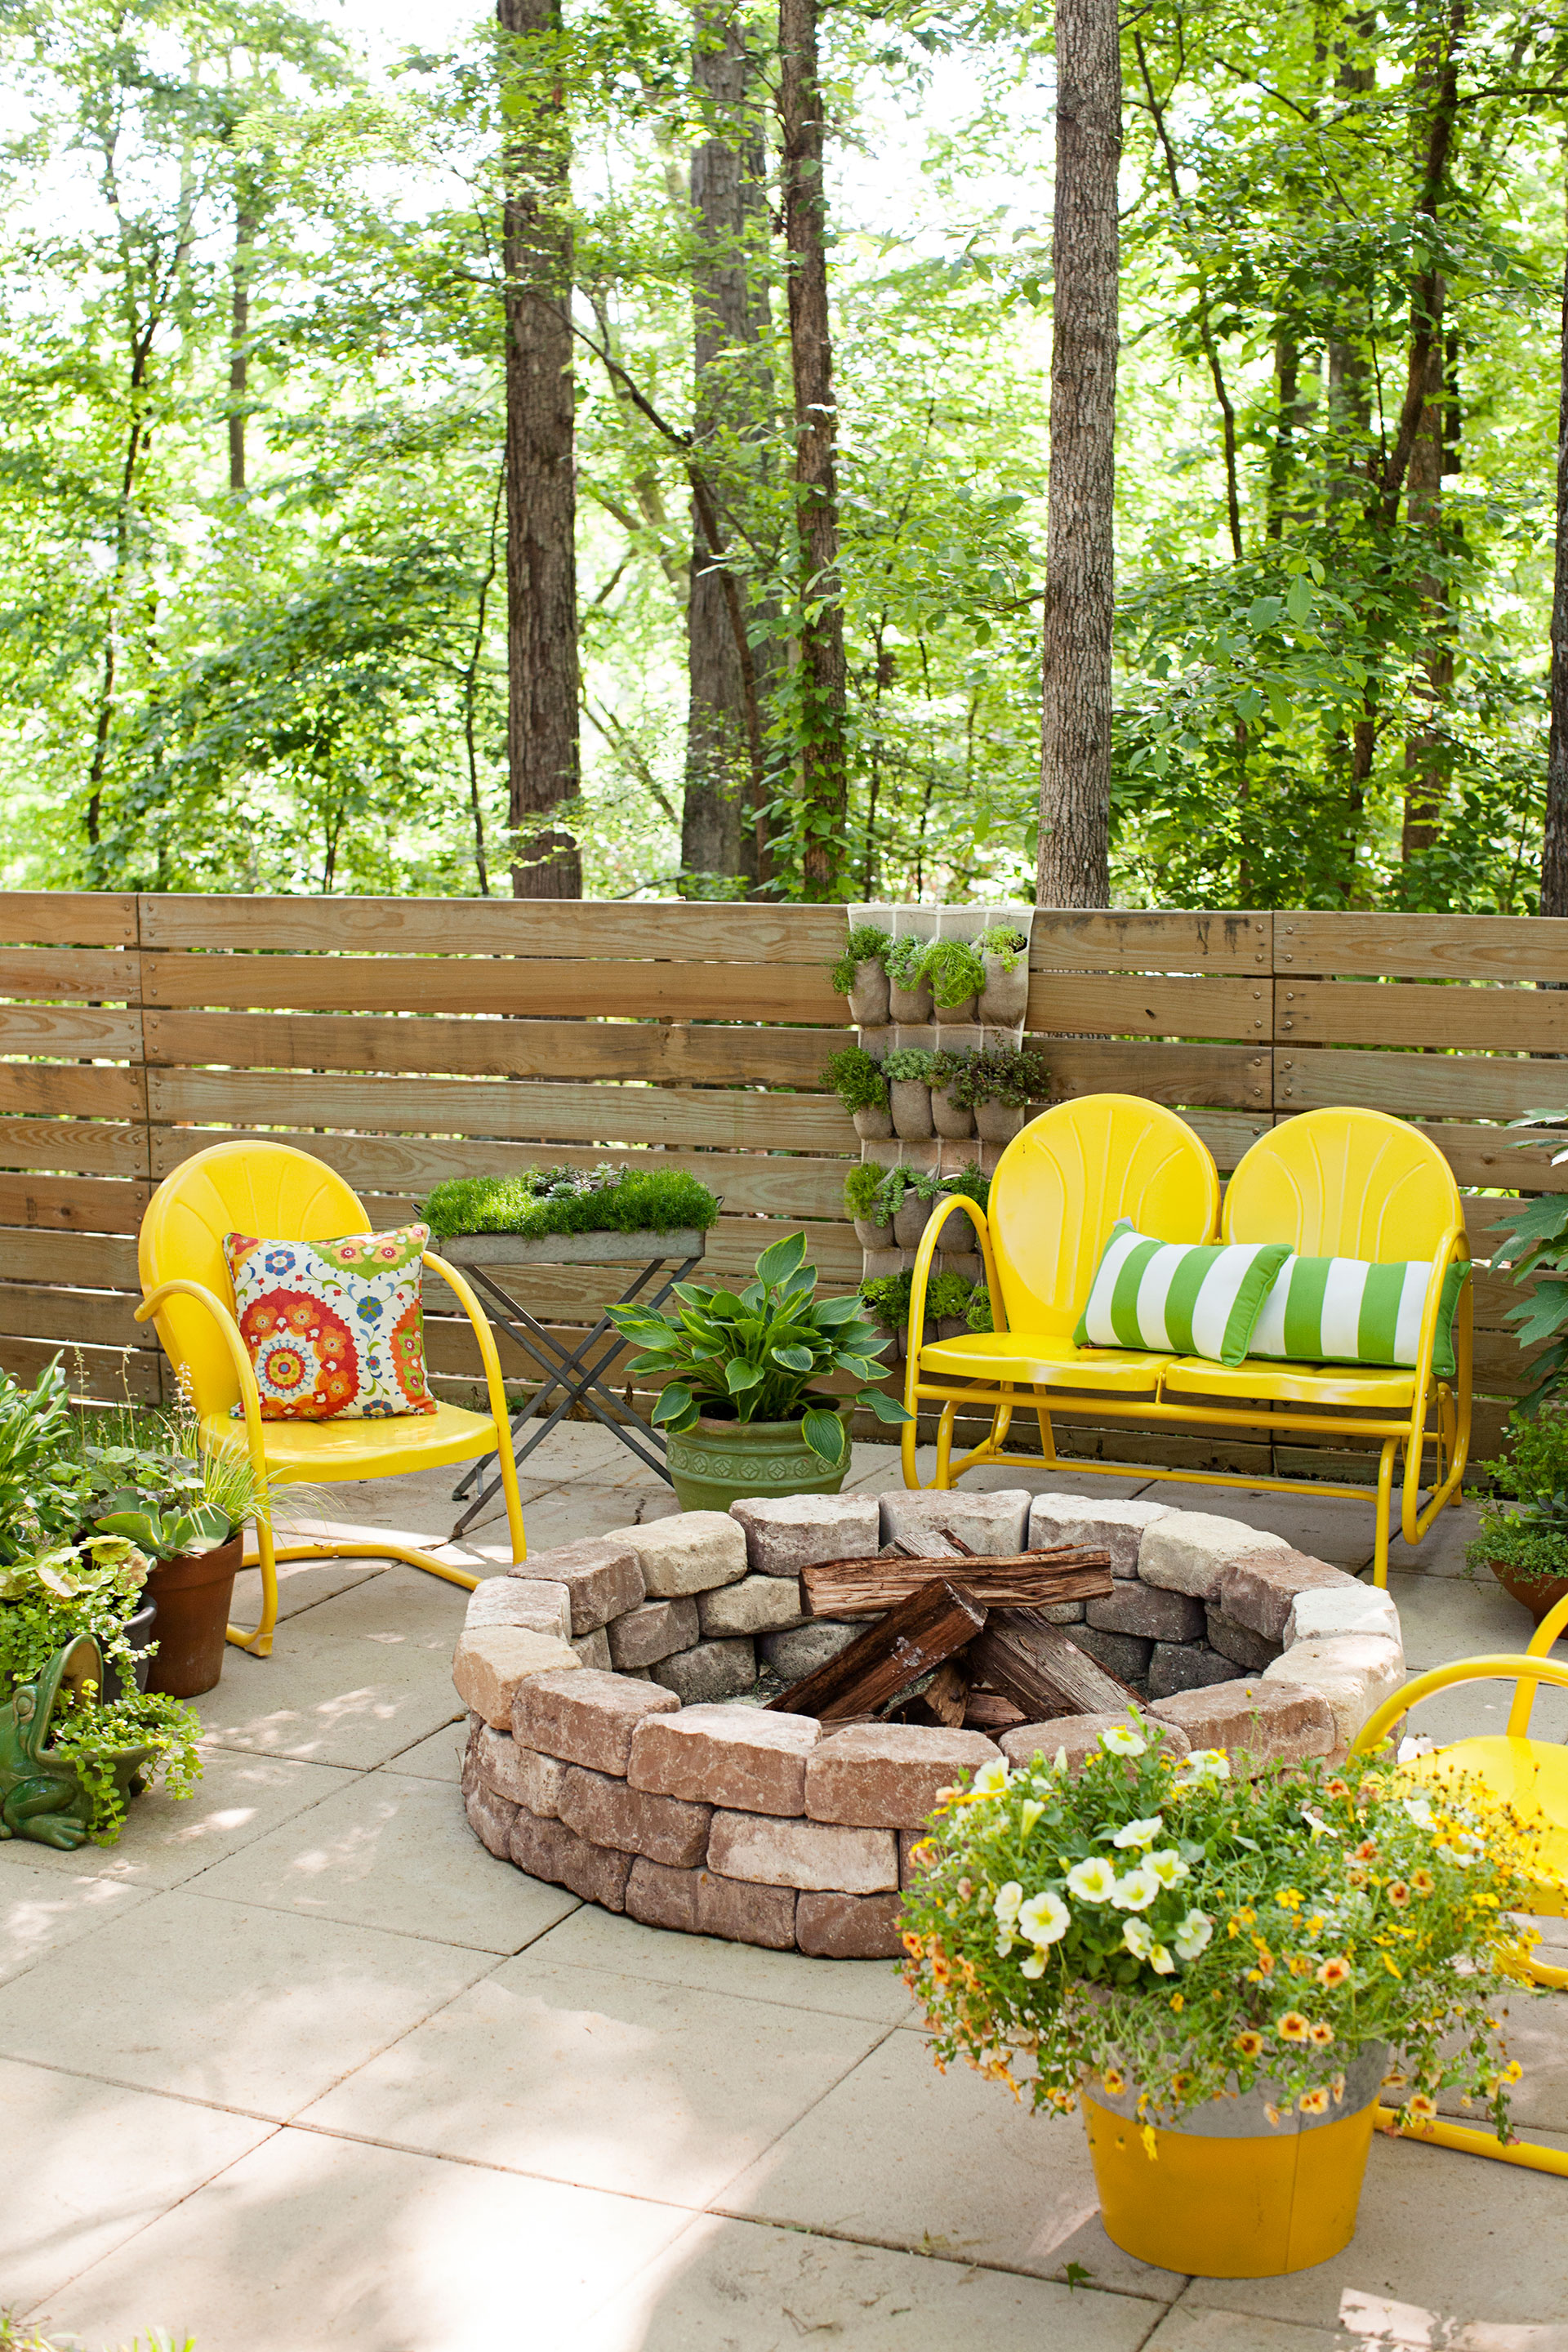 25 Backyard Decorating Ideas - Easy Gardening Tips and DIY ... on Easy Diy Garden Decor id=49698